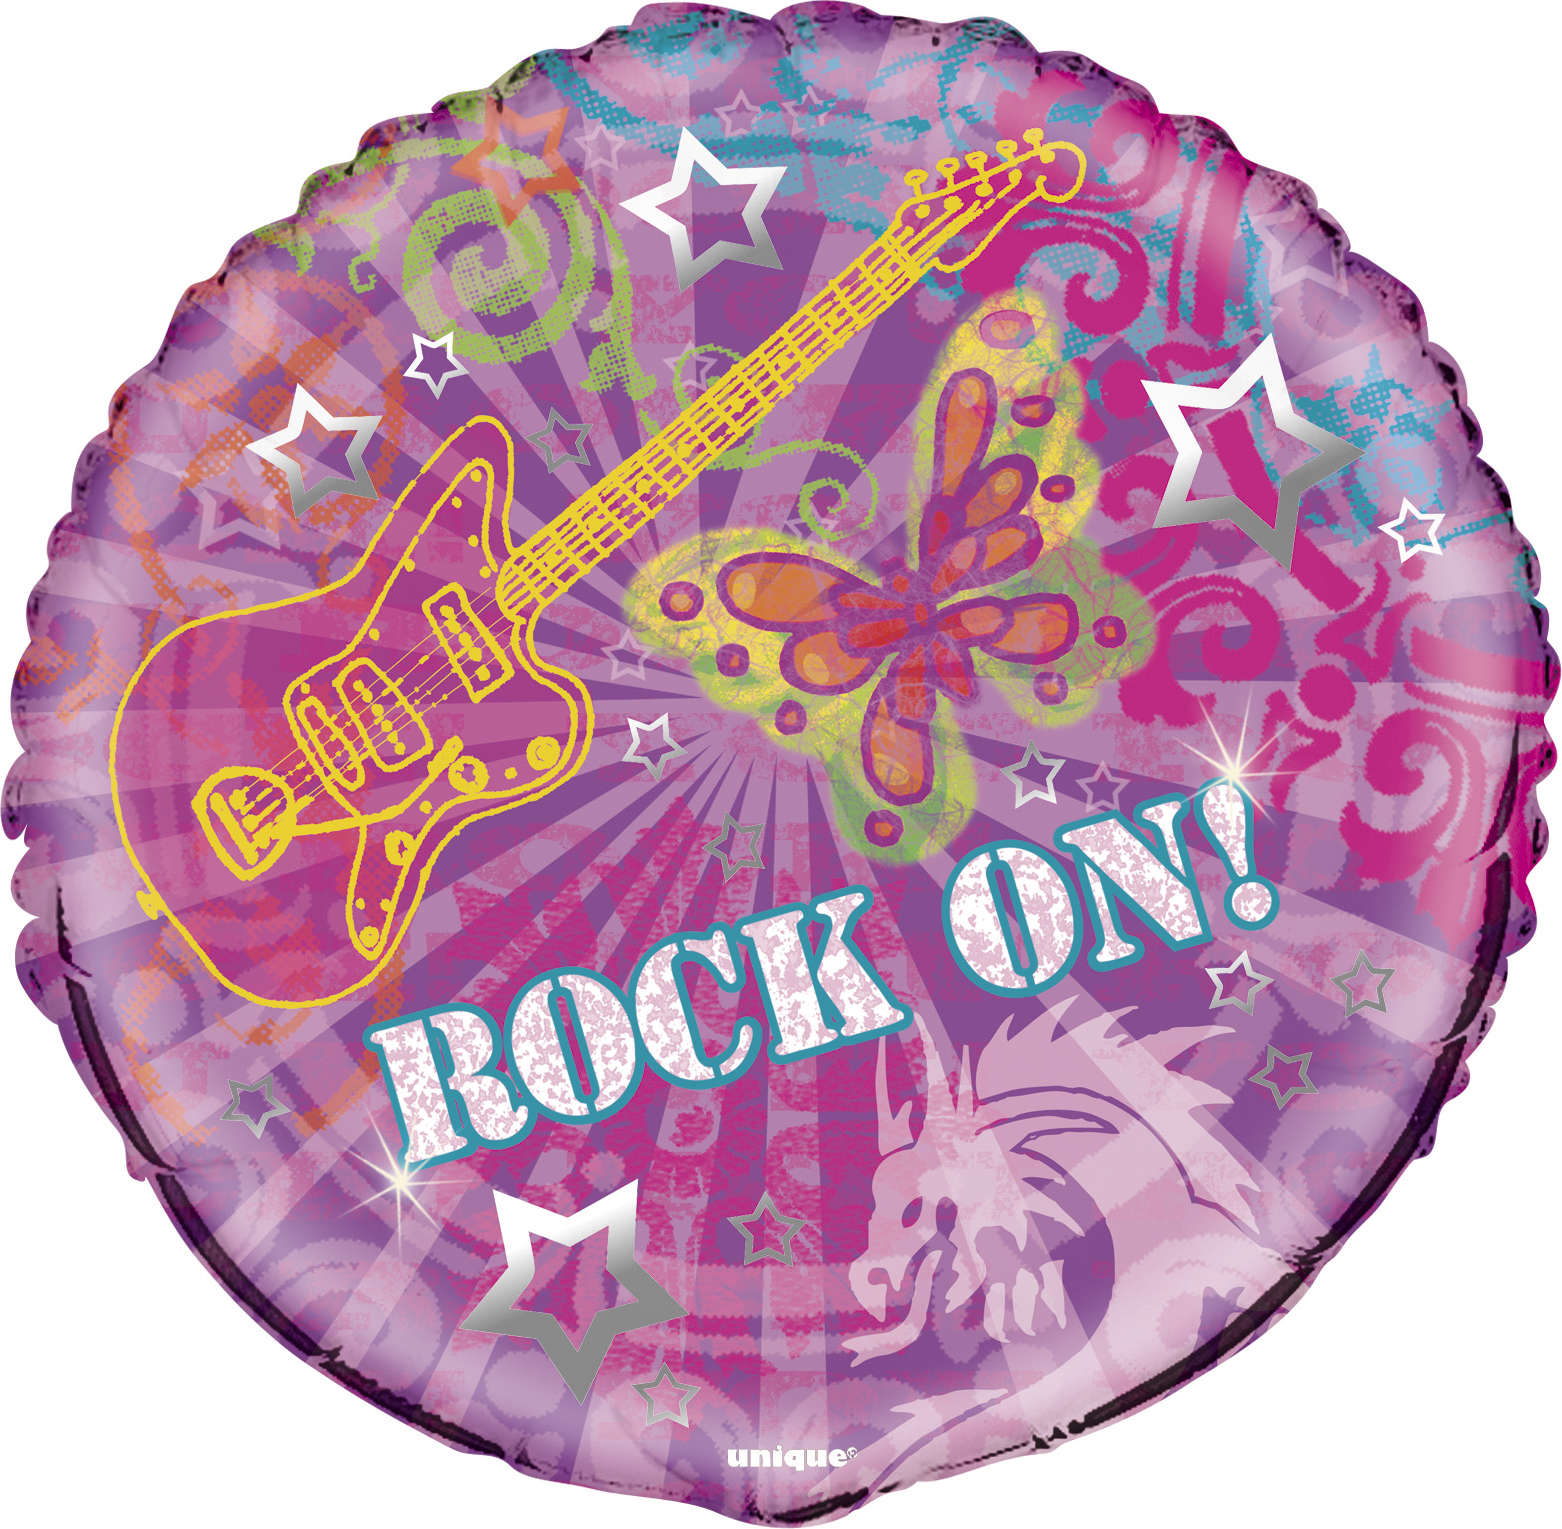 "Unique Rock On Rockstar Birthday Party 18"" Foil Balloon, Purple Pink"